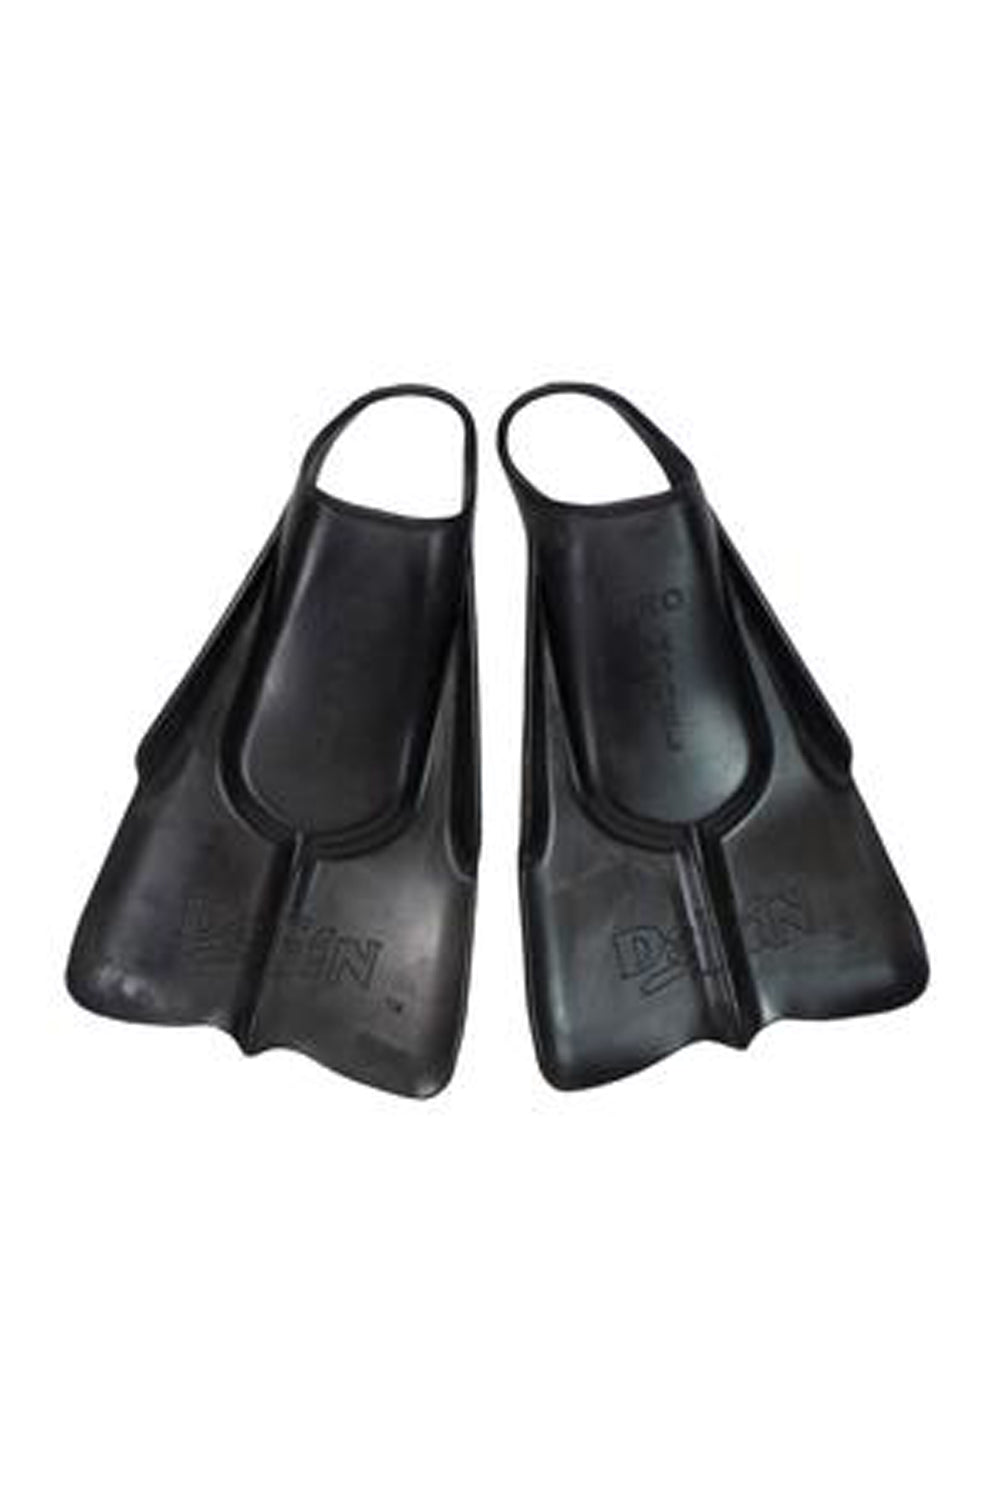 Da Fin Swimfins Flippers - Black